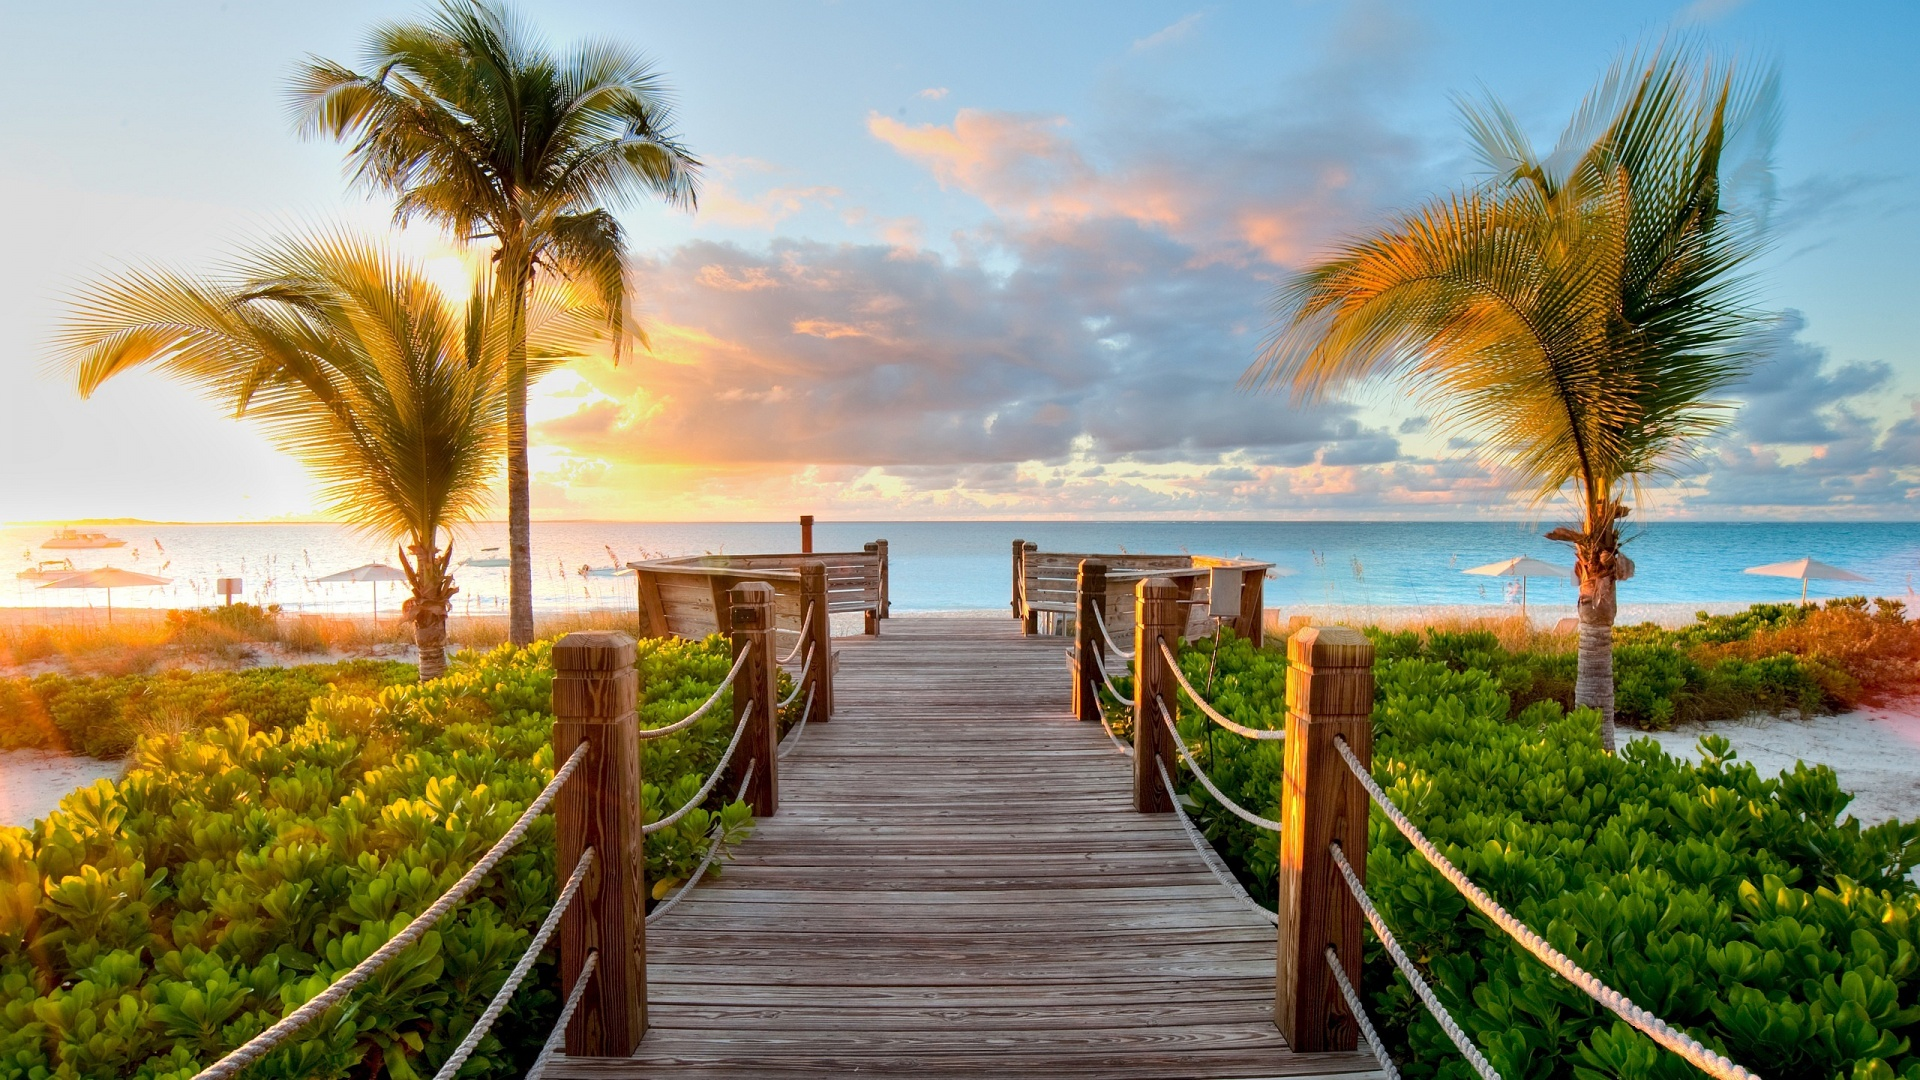 Bridge-Wood-Beach-Caribbean-HD-Free-Wallpaper